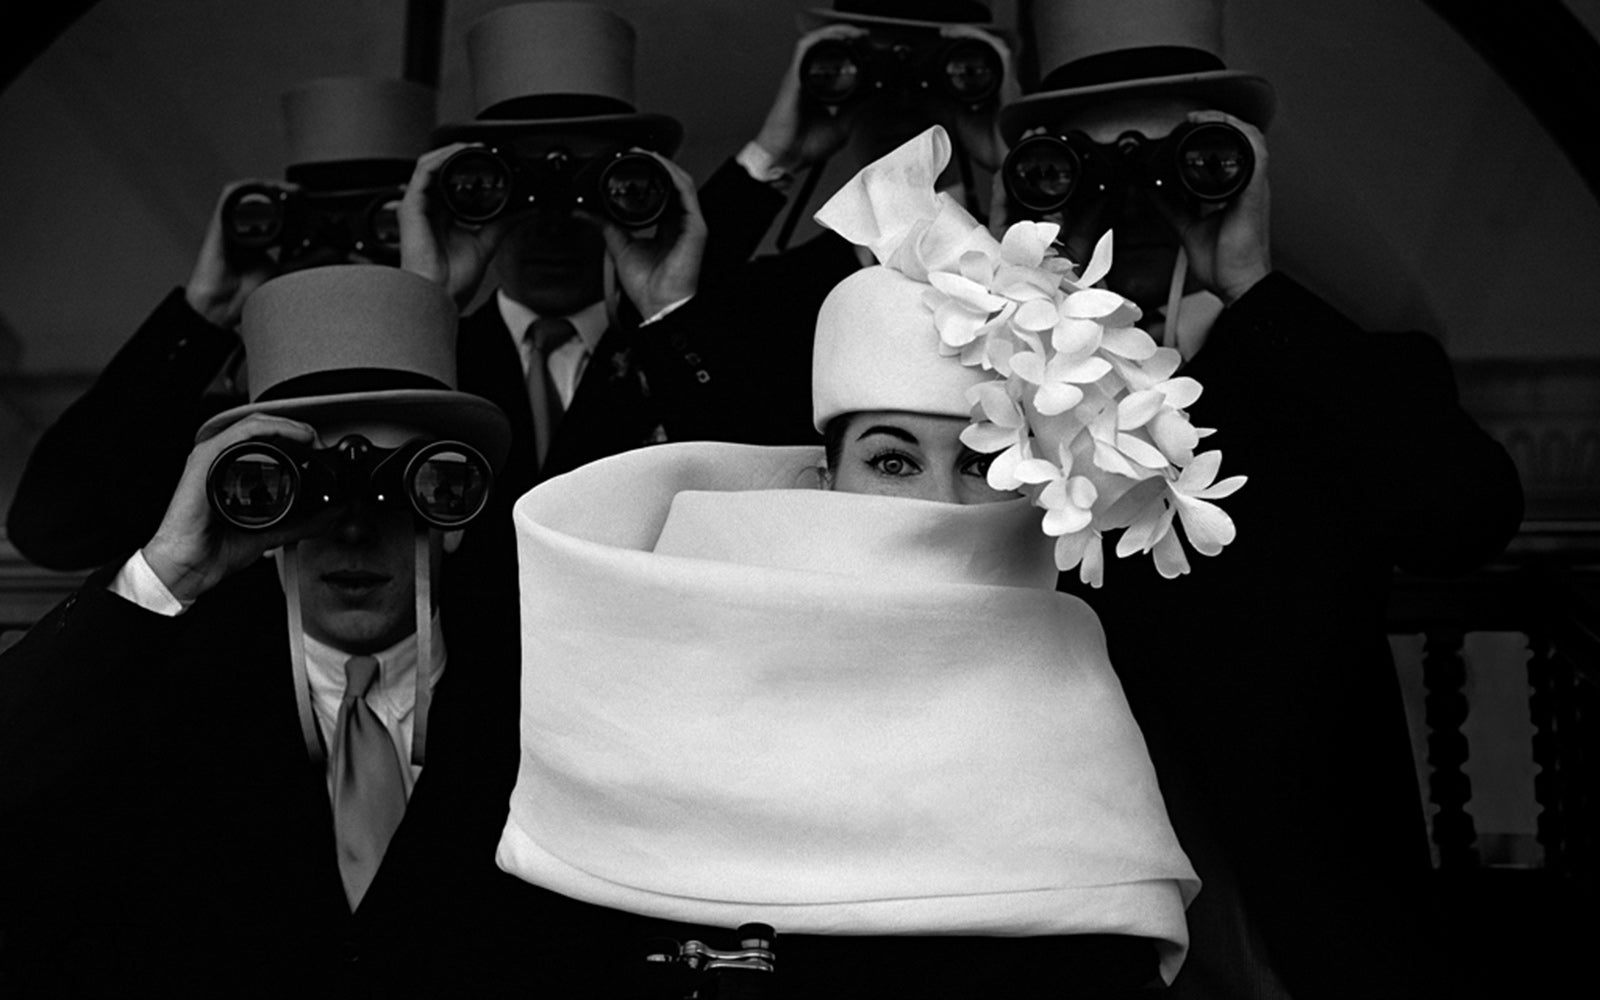 Frank Horvat: 1958, Paris, for Jardin des Modes, Givenchy hat B | Platinum Print | Lenscloud